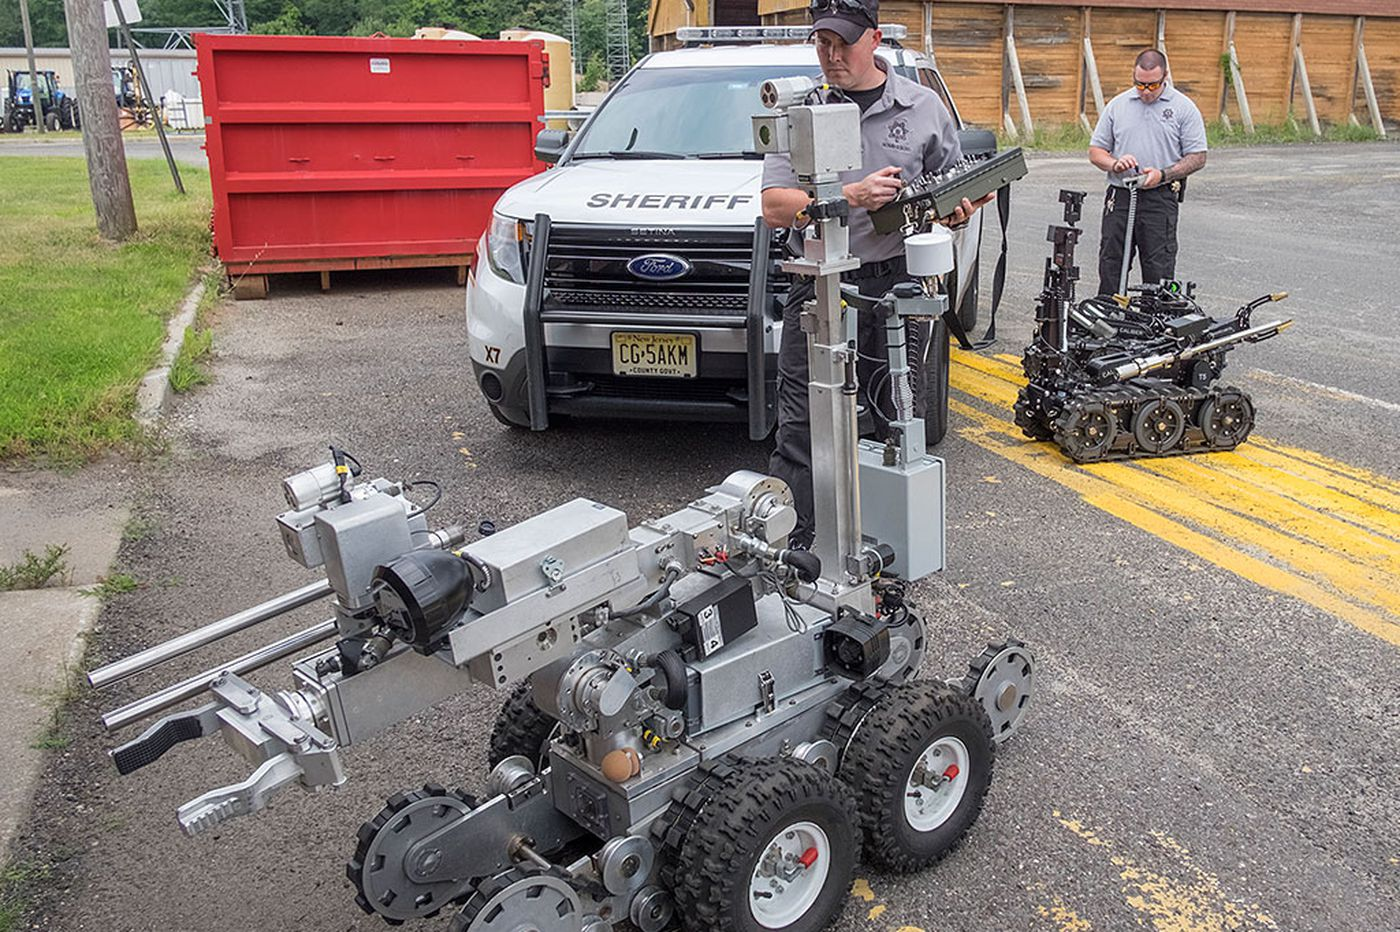 Robots proving their mettle in county law enforcement